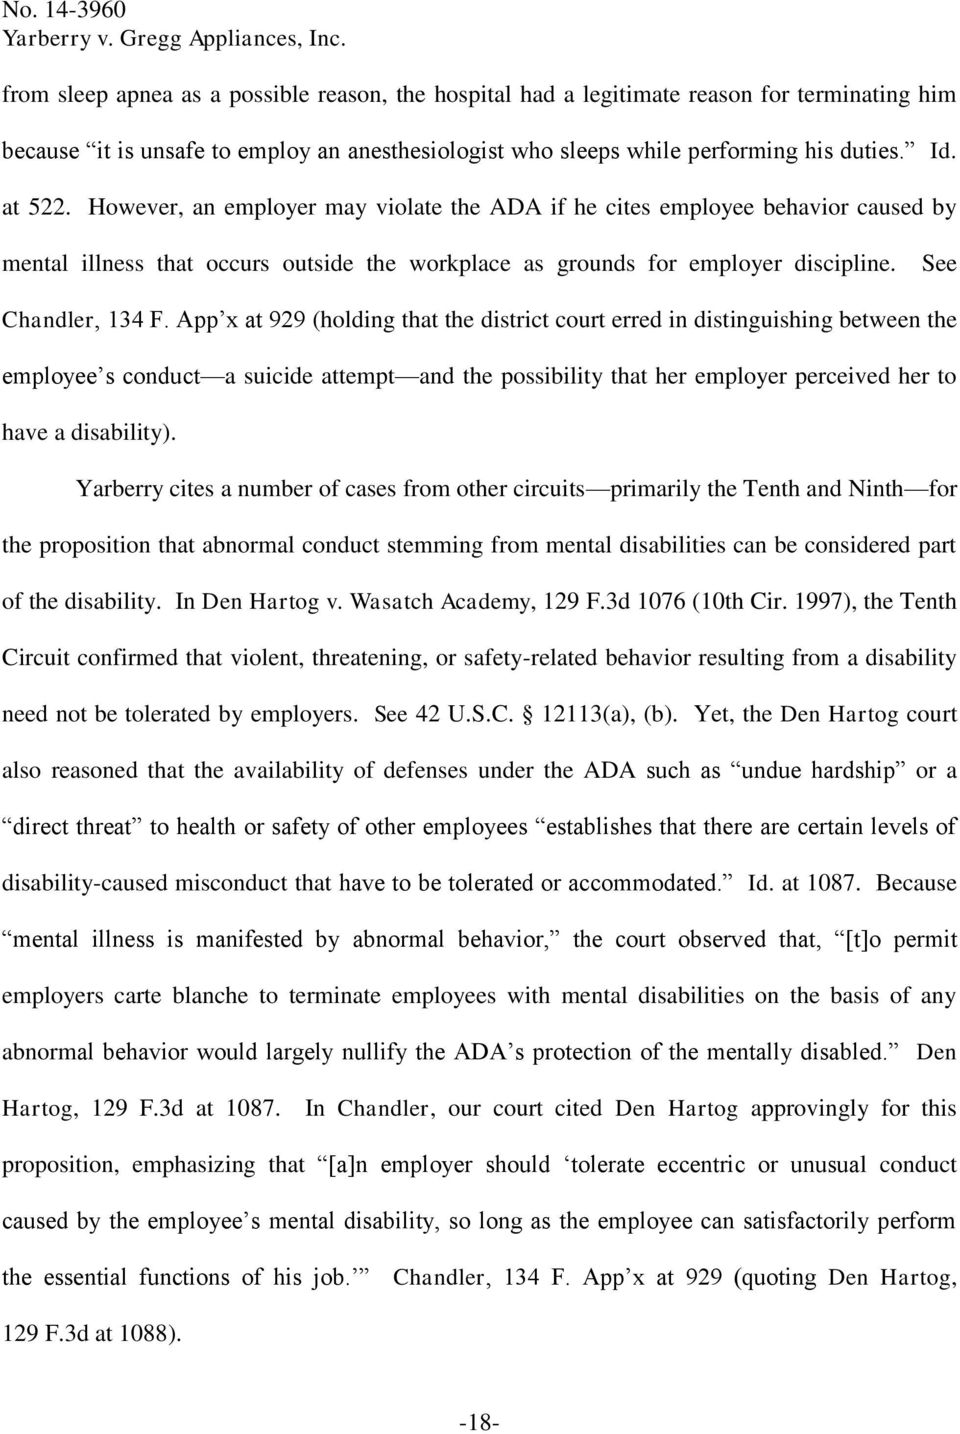 App x at 929 (holding that the district court erred in distinguishing between the employee s conduct a suicide attempt and the possibility that her employer perceived her to have a disability).